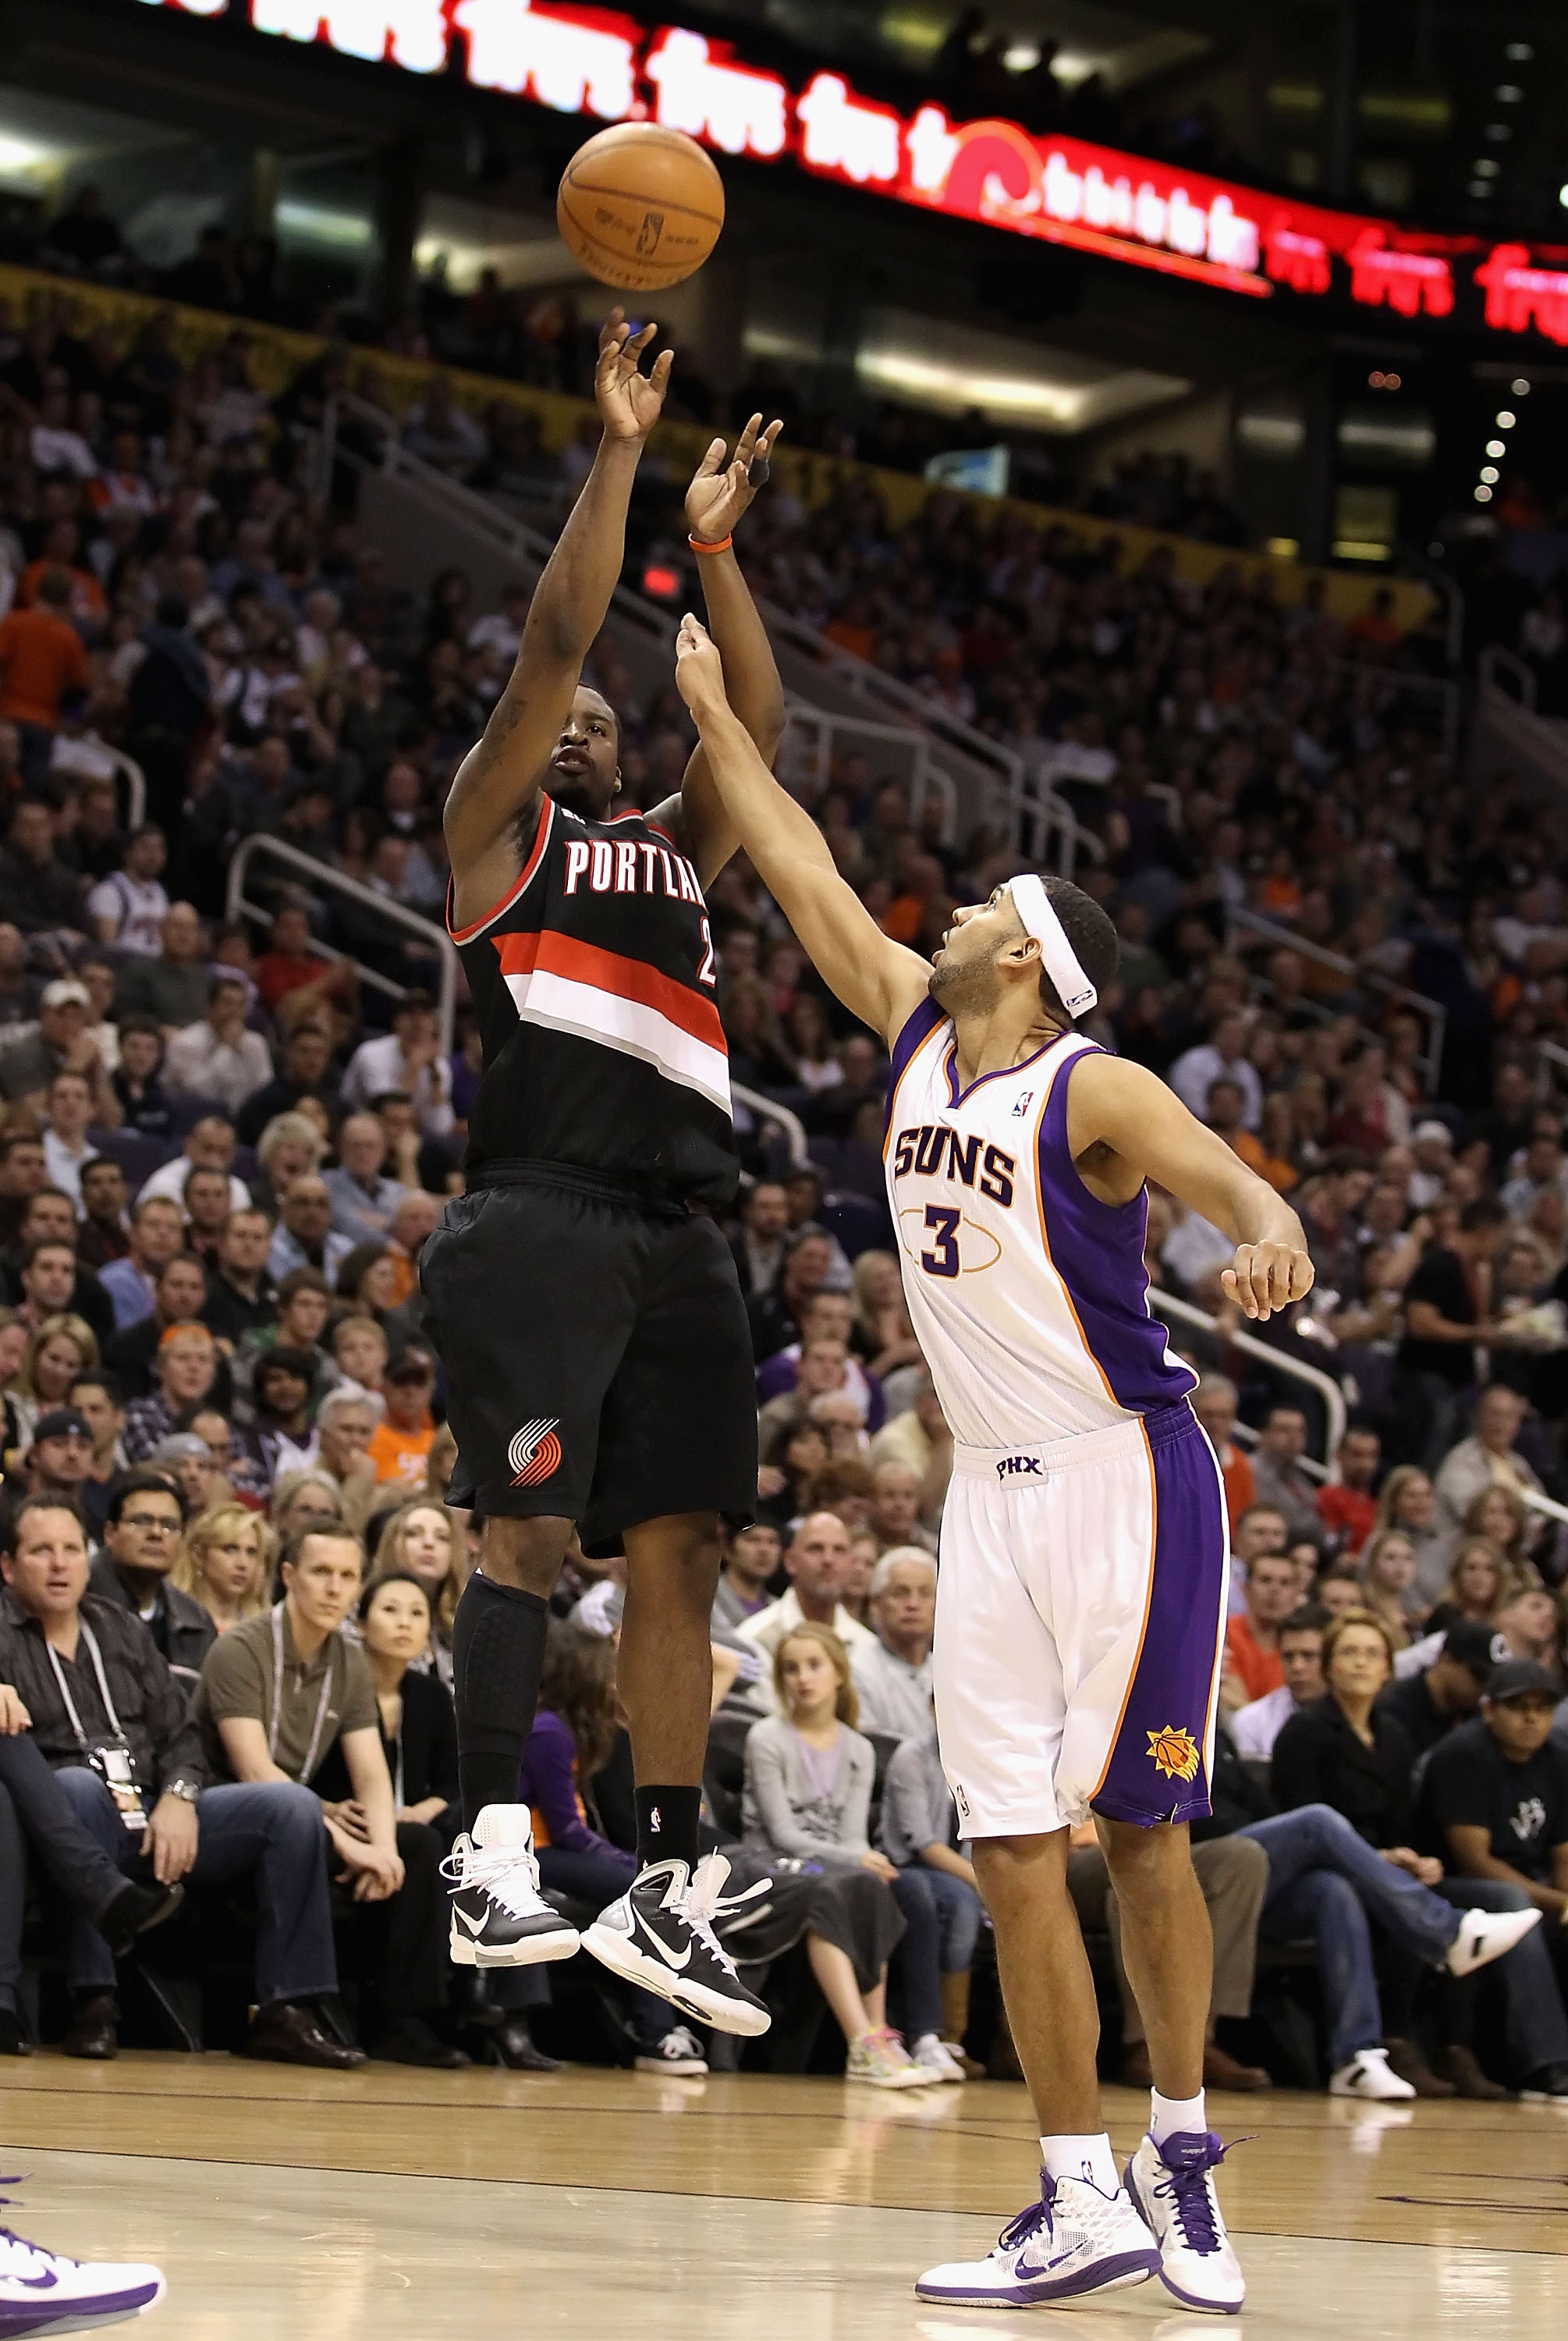 PHOENIX, AZ - JANUARY 14:  Wesley Matthews #2 of the Portland Trail Blazers puts up a shot over Jared Dudley #3 of the Phoenix Suns during the NBA game at US Airways Center on January 14, 2011 in Phoenix, Arizona.  NOTE TO USER: User expressly acknowledge